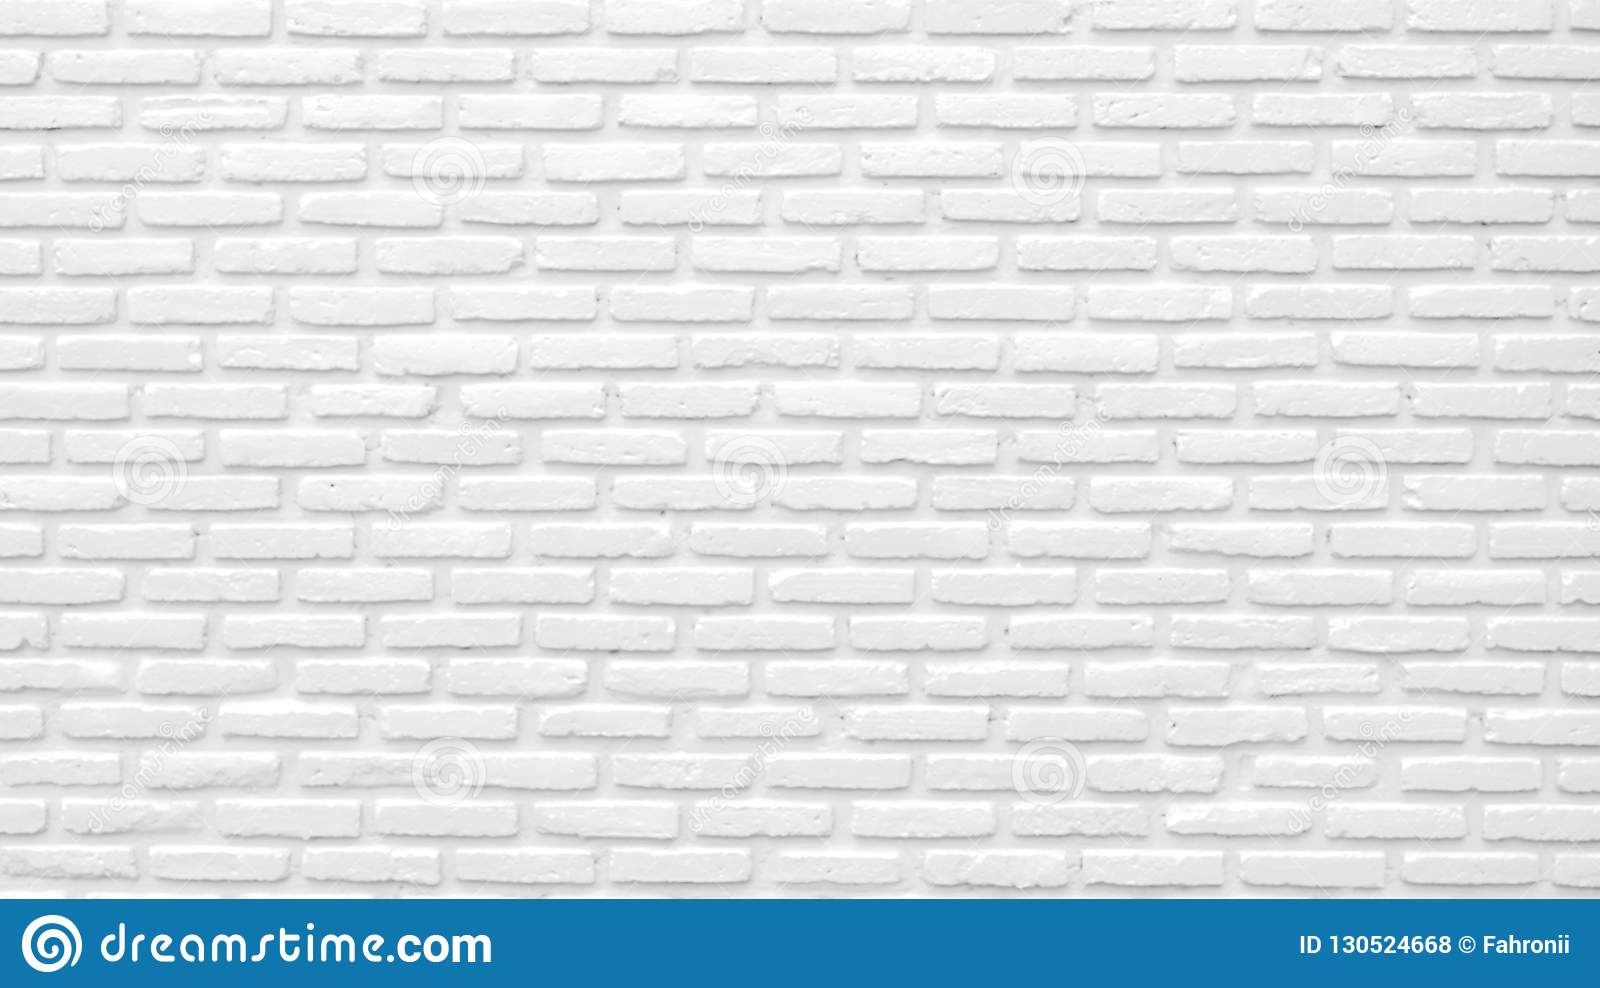 White Brick Wall Texture Background With Space For - White Brick Wallpaper Texture , HD Wallpaper & Backgrounds